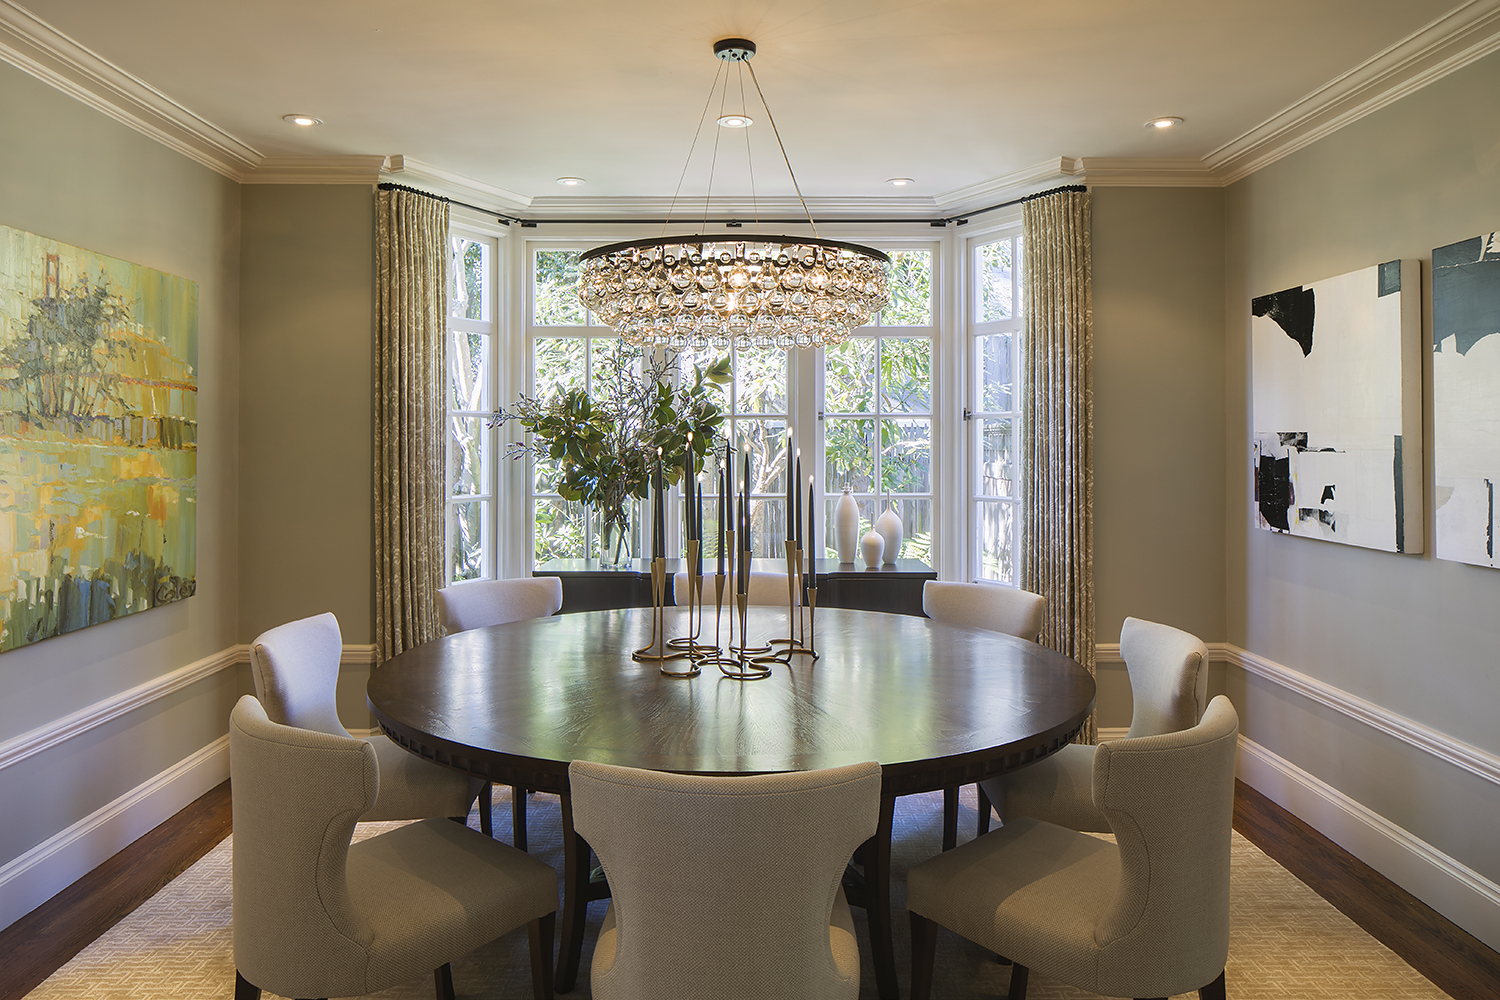 A modern style, fully redesigned, remodeled formal dining room in an historic Tudor house Piedmont Oakland San Francisco.